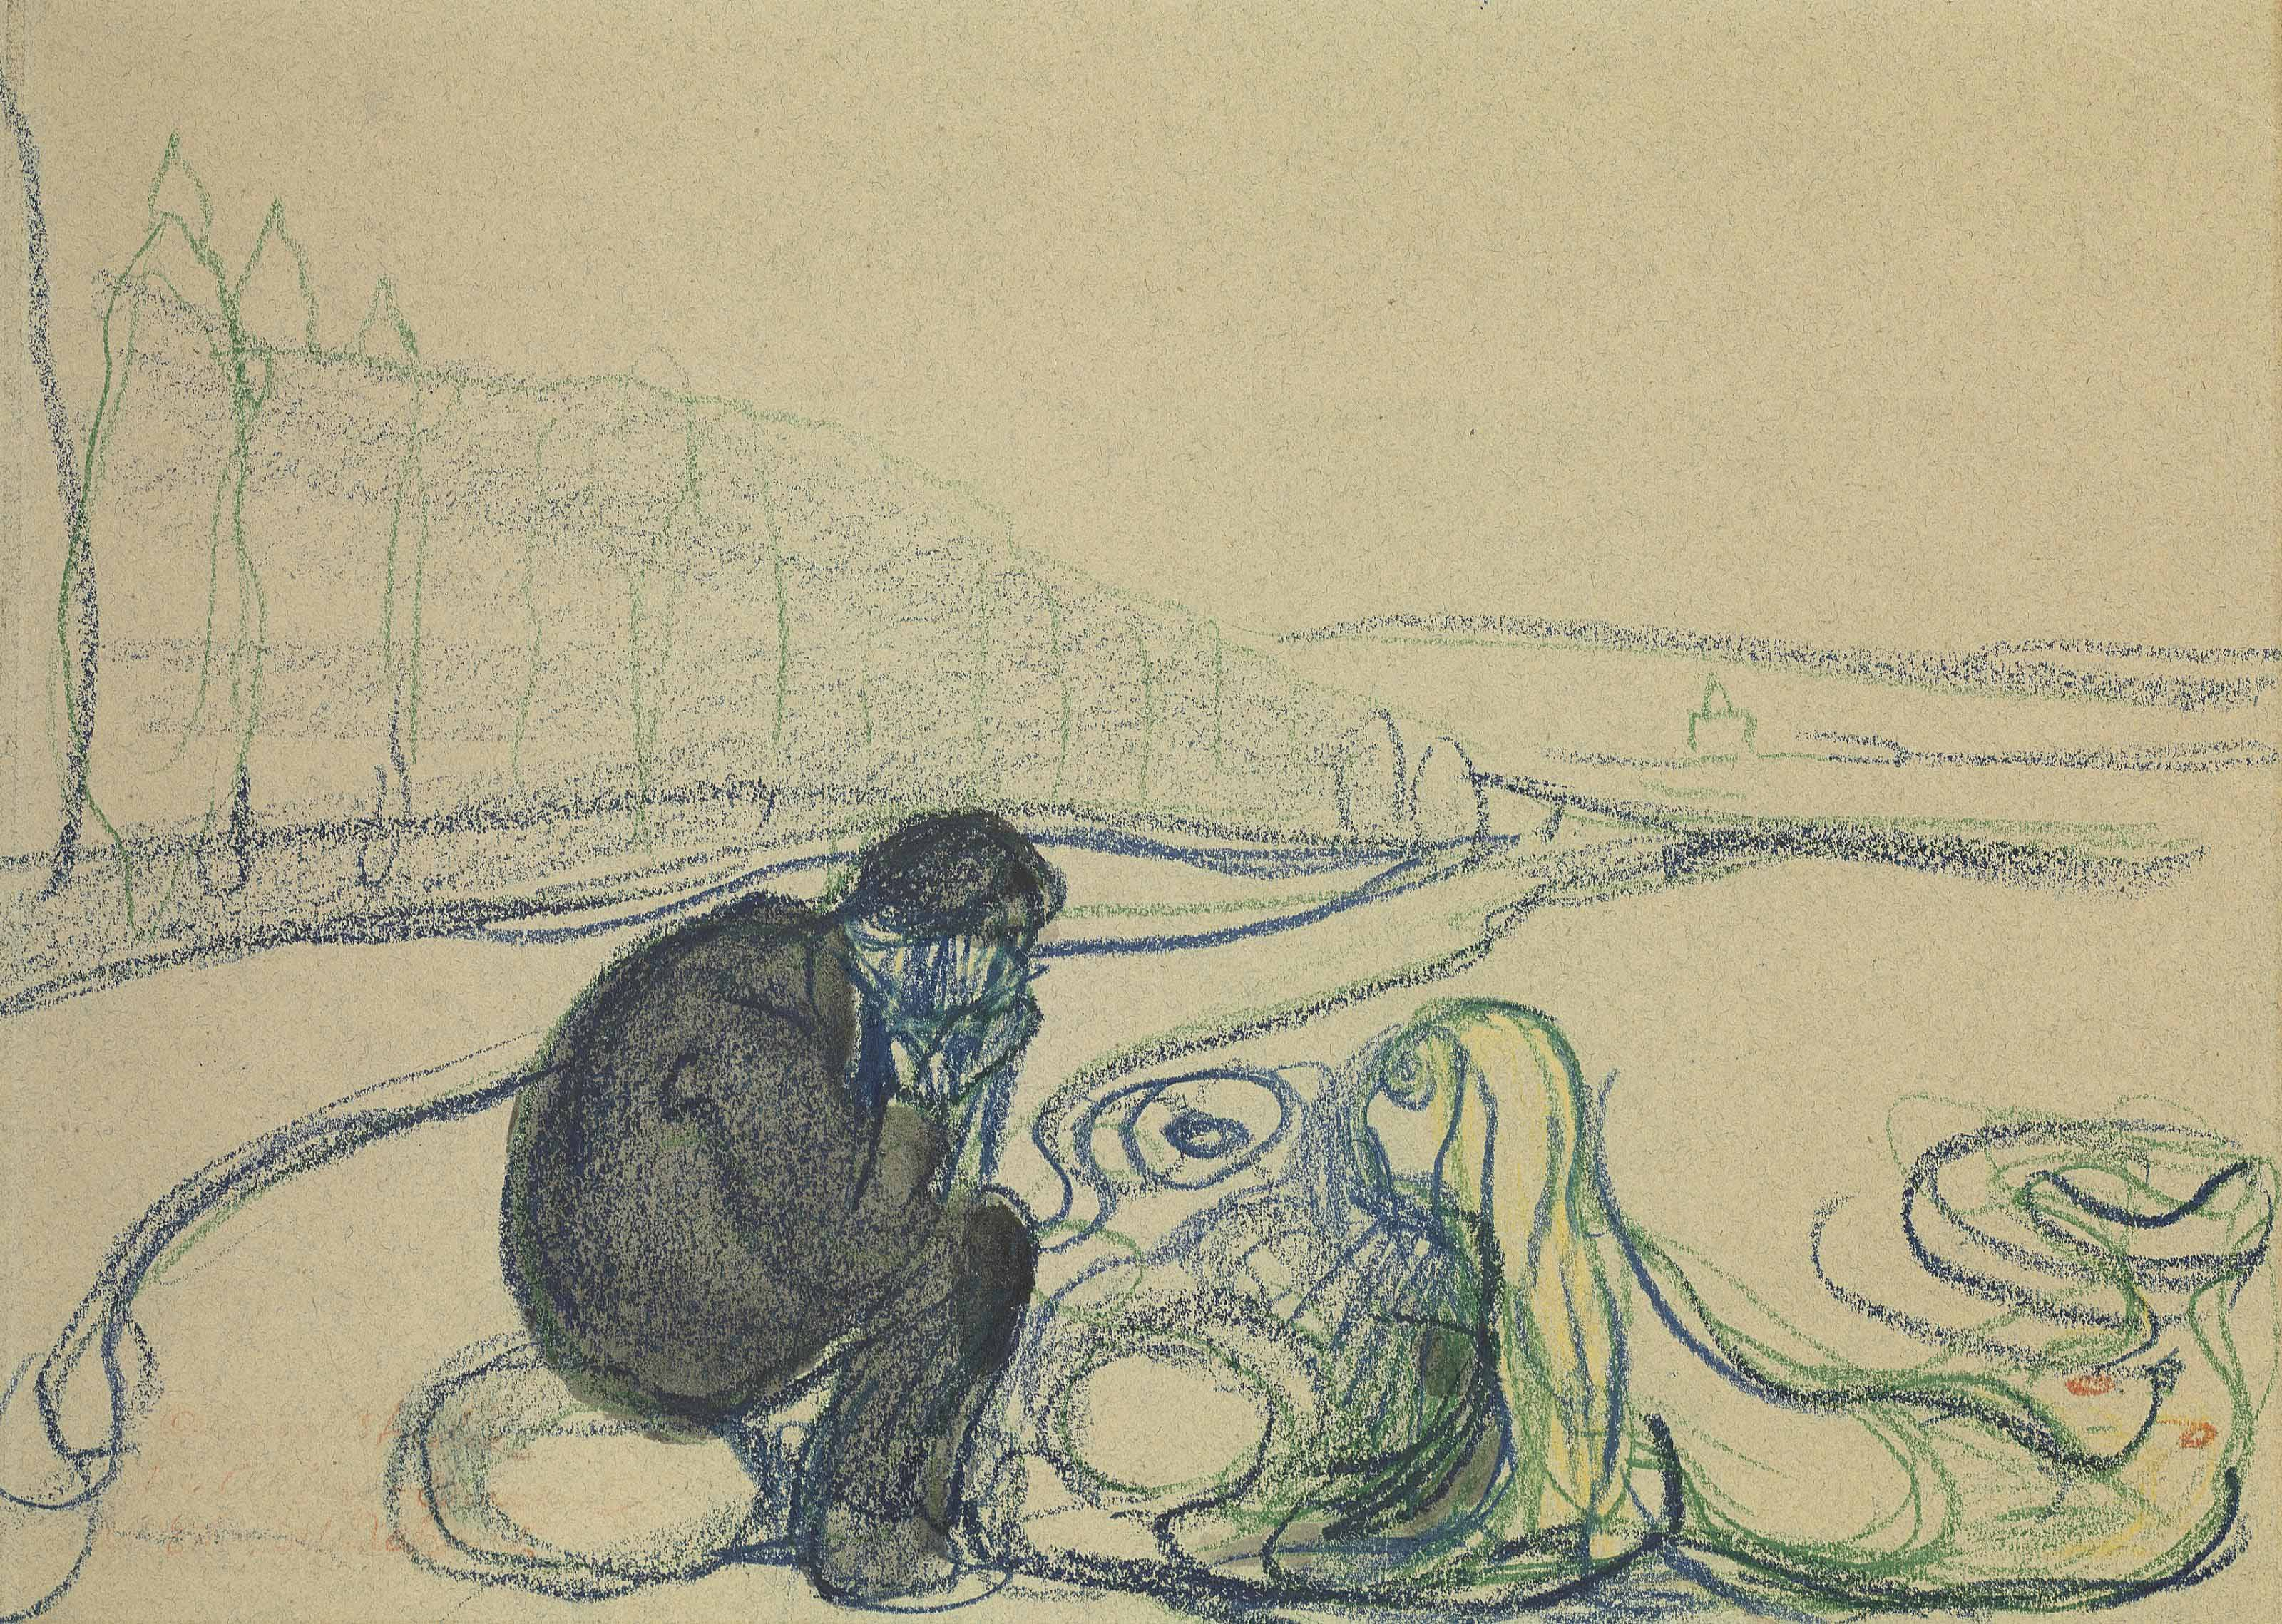 Melancholy Man and Mermaid (Encounter on the Beach)